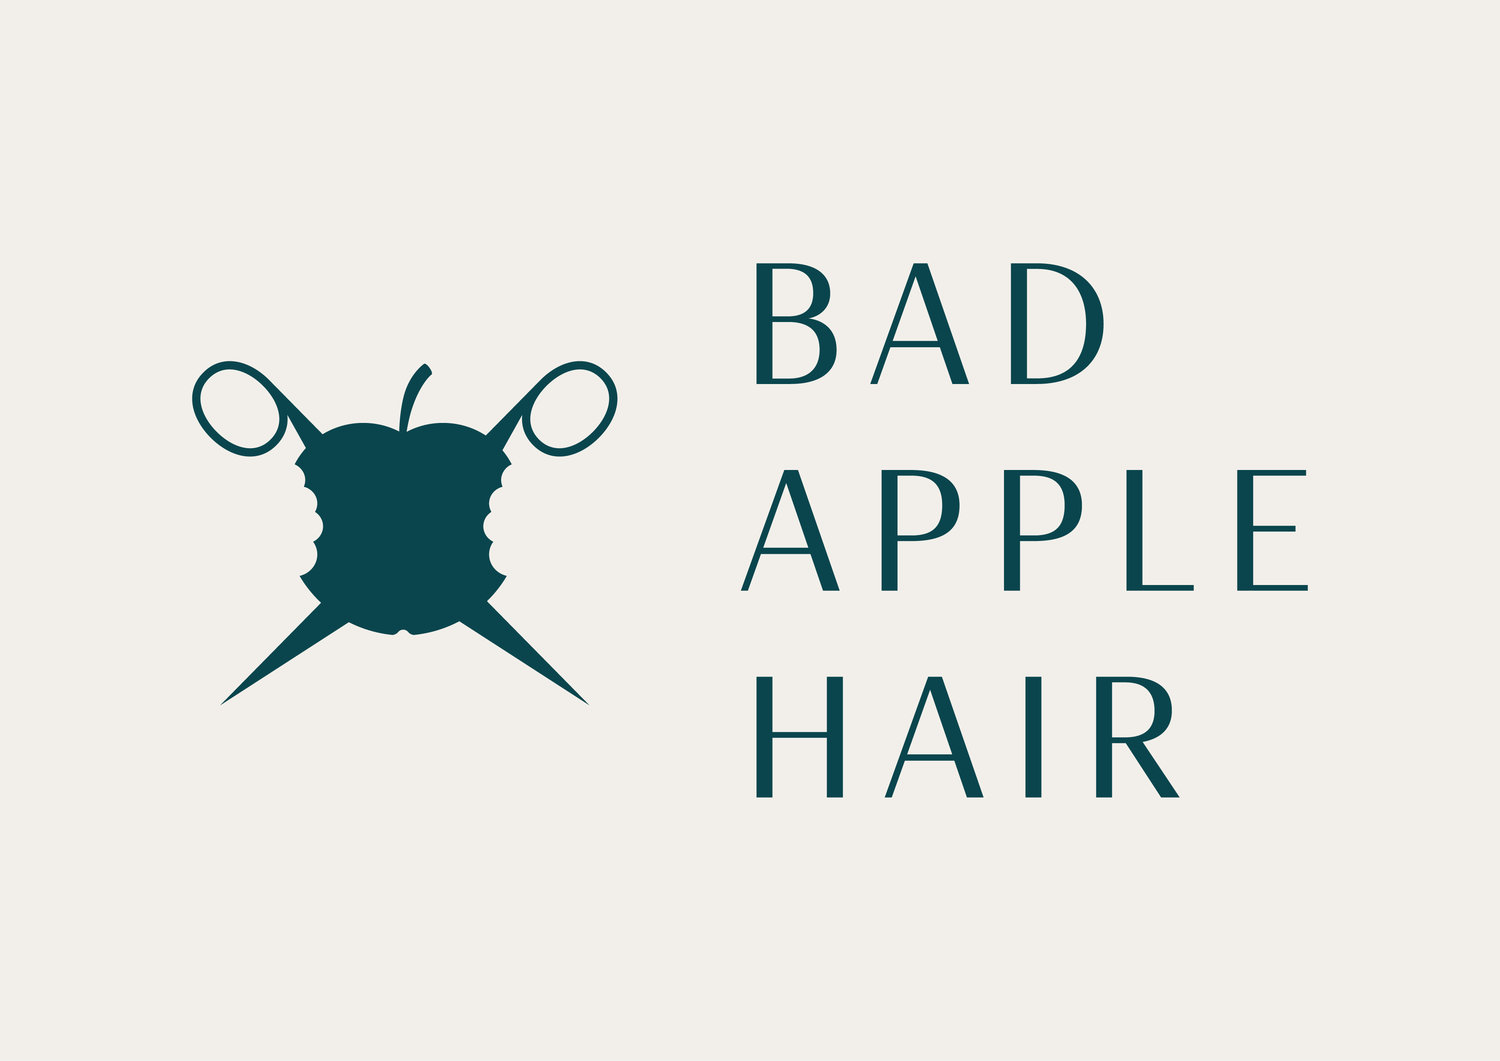 Bad Apple Hair | Award winning hair salons & hairdressers in Birmingham City Centre, Walsall, Solihull, Wolverhampton